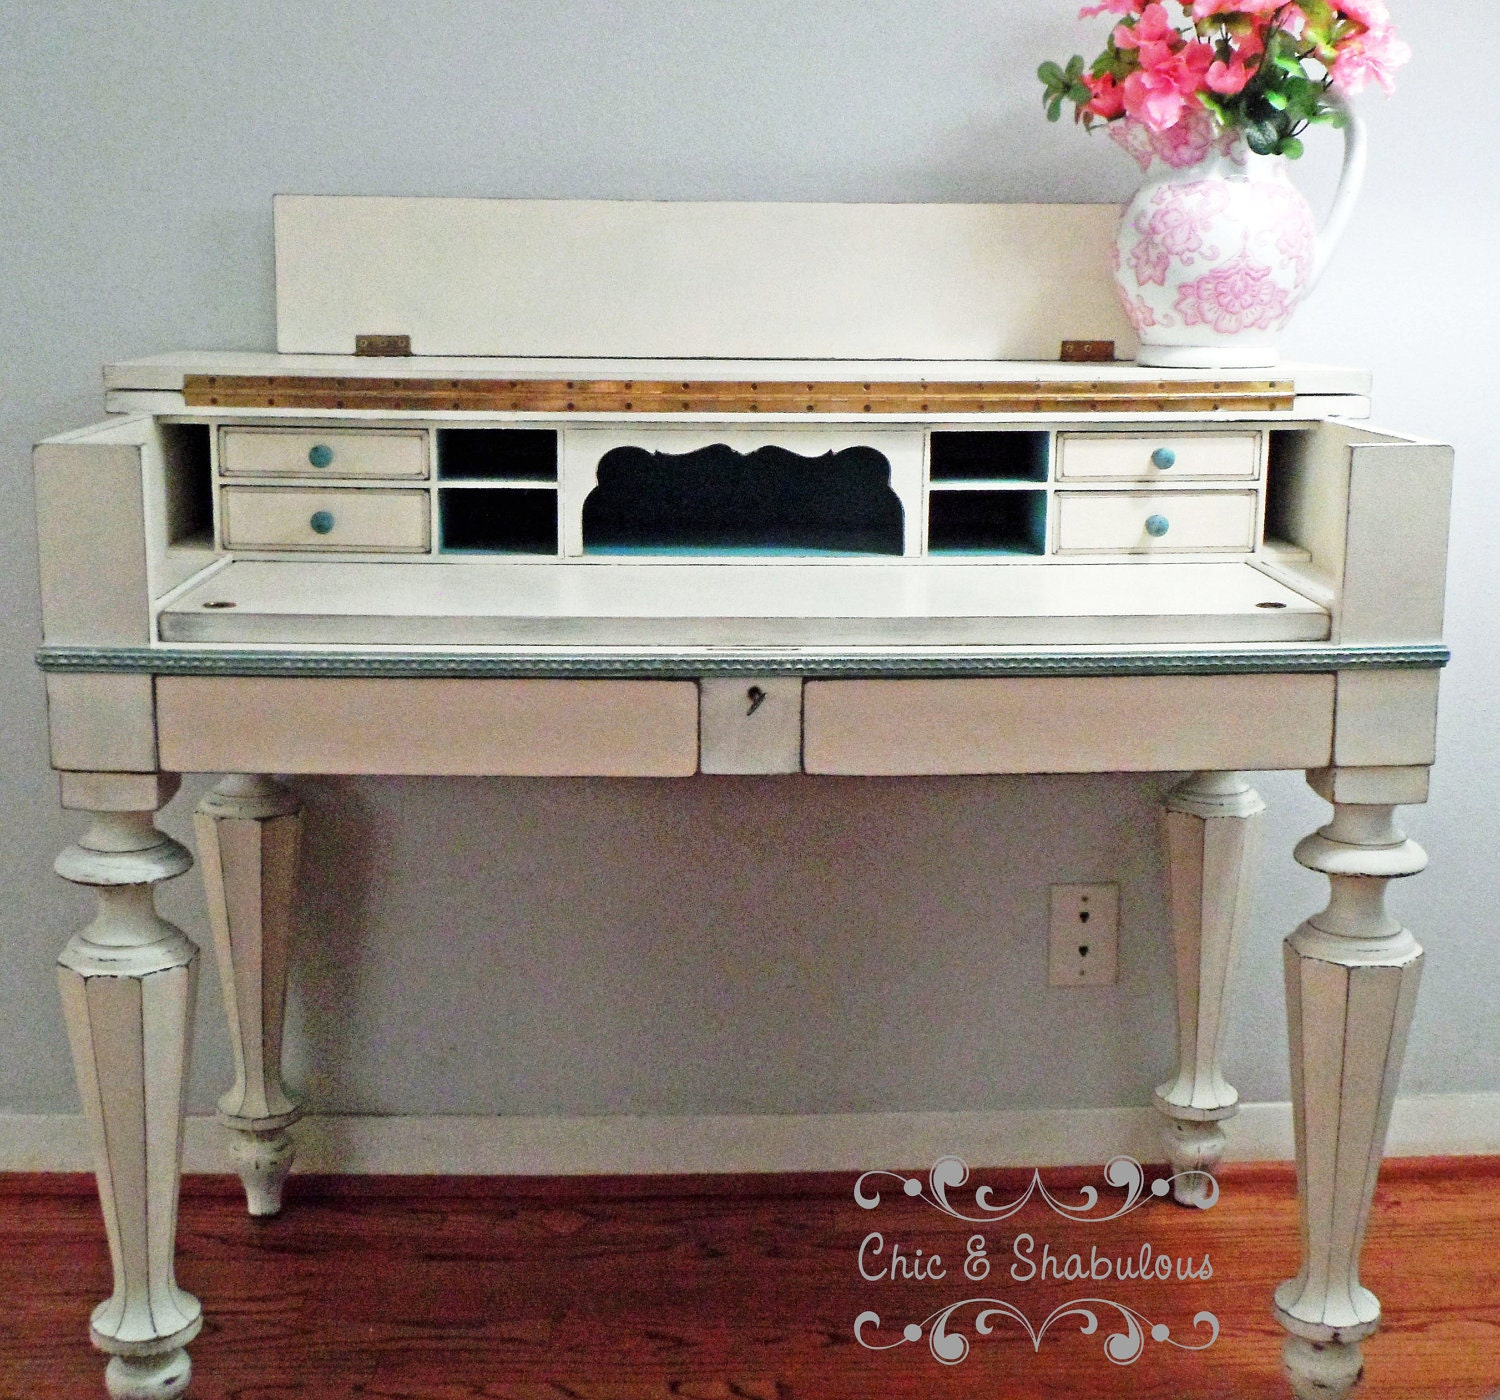 Greyhound Shipping Quote >> Spinet / Secretary Desk Shabby Chic